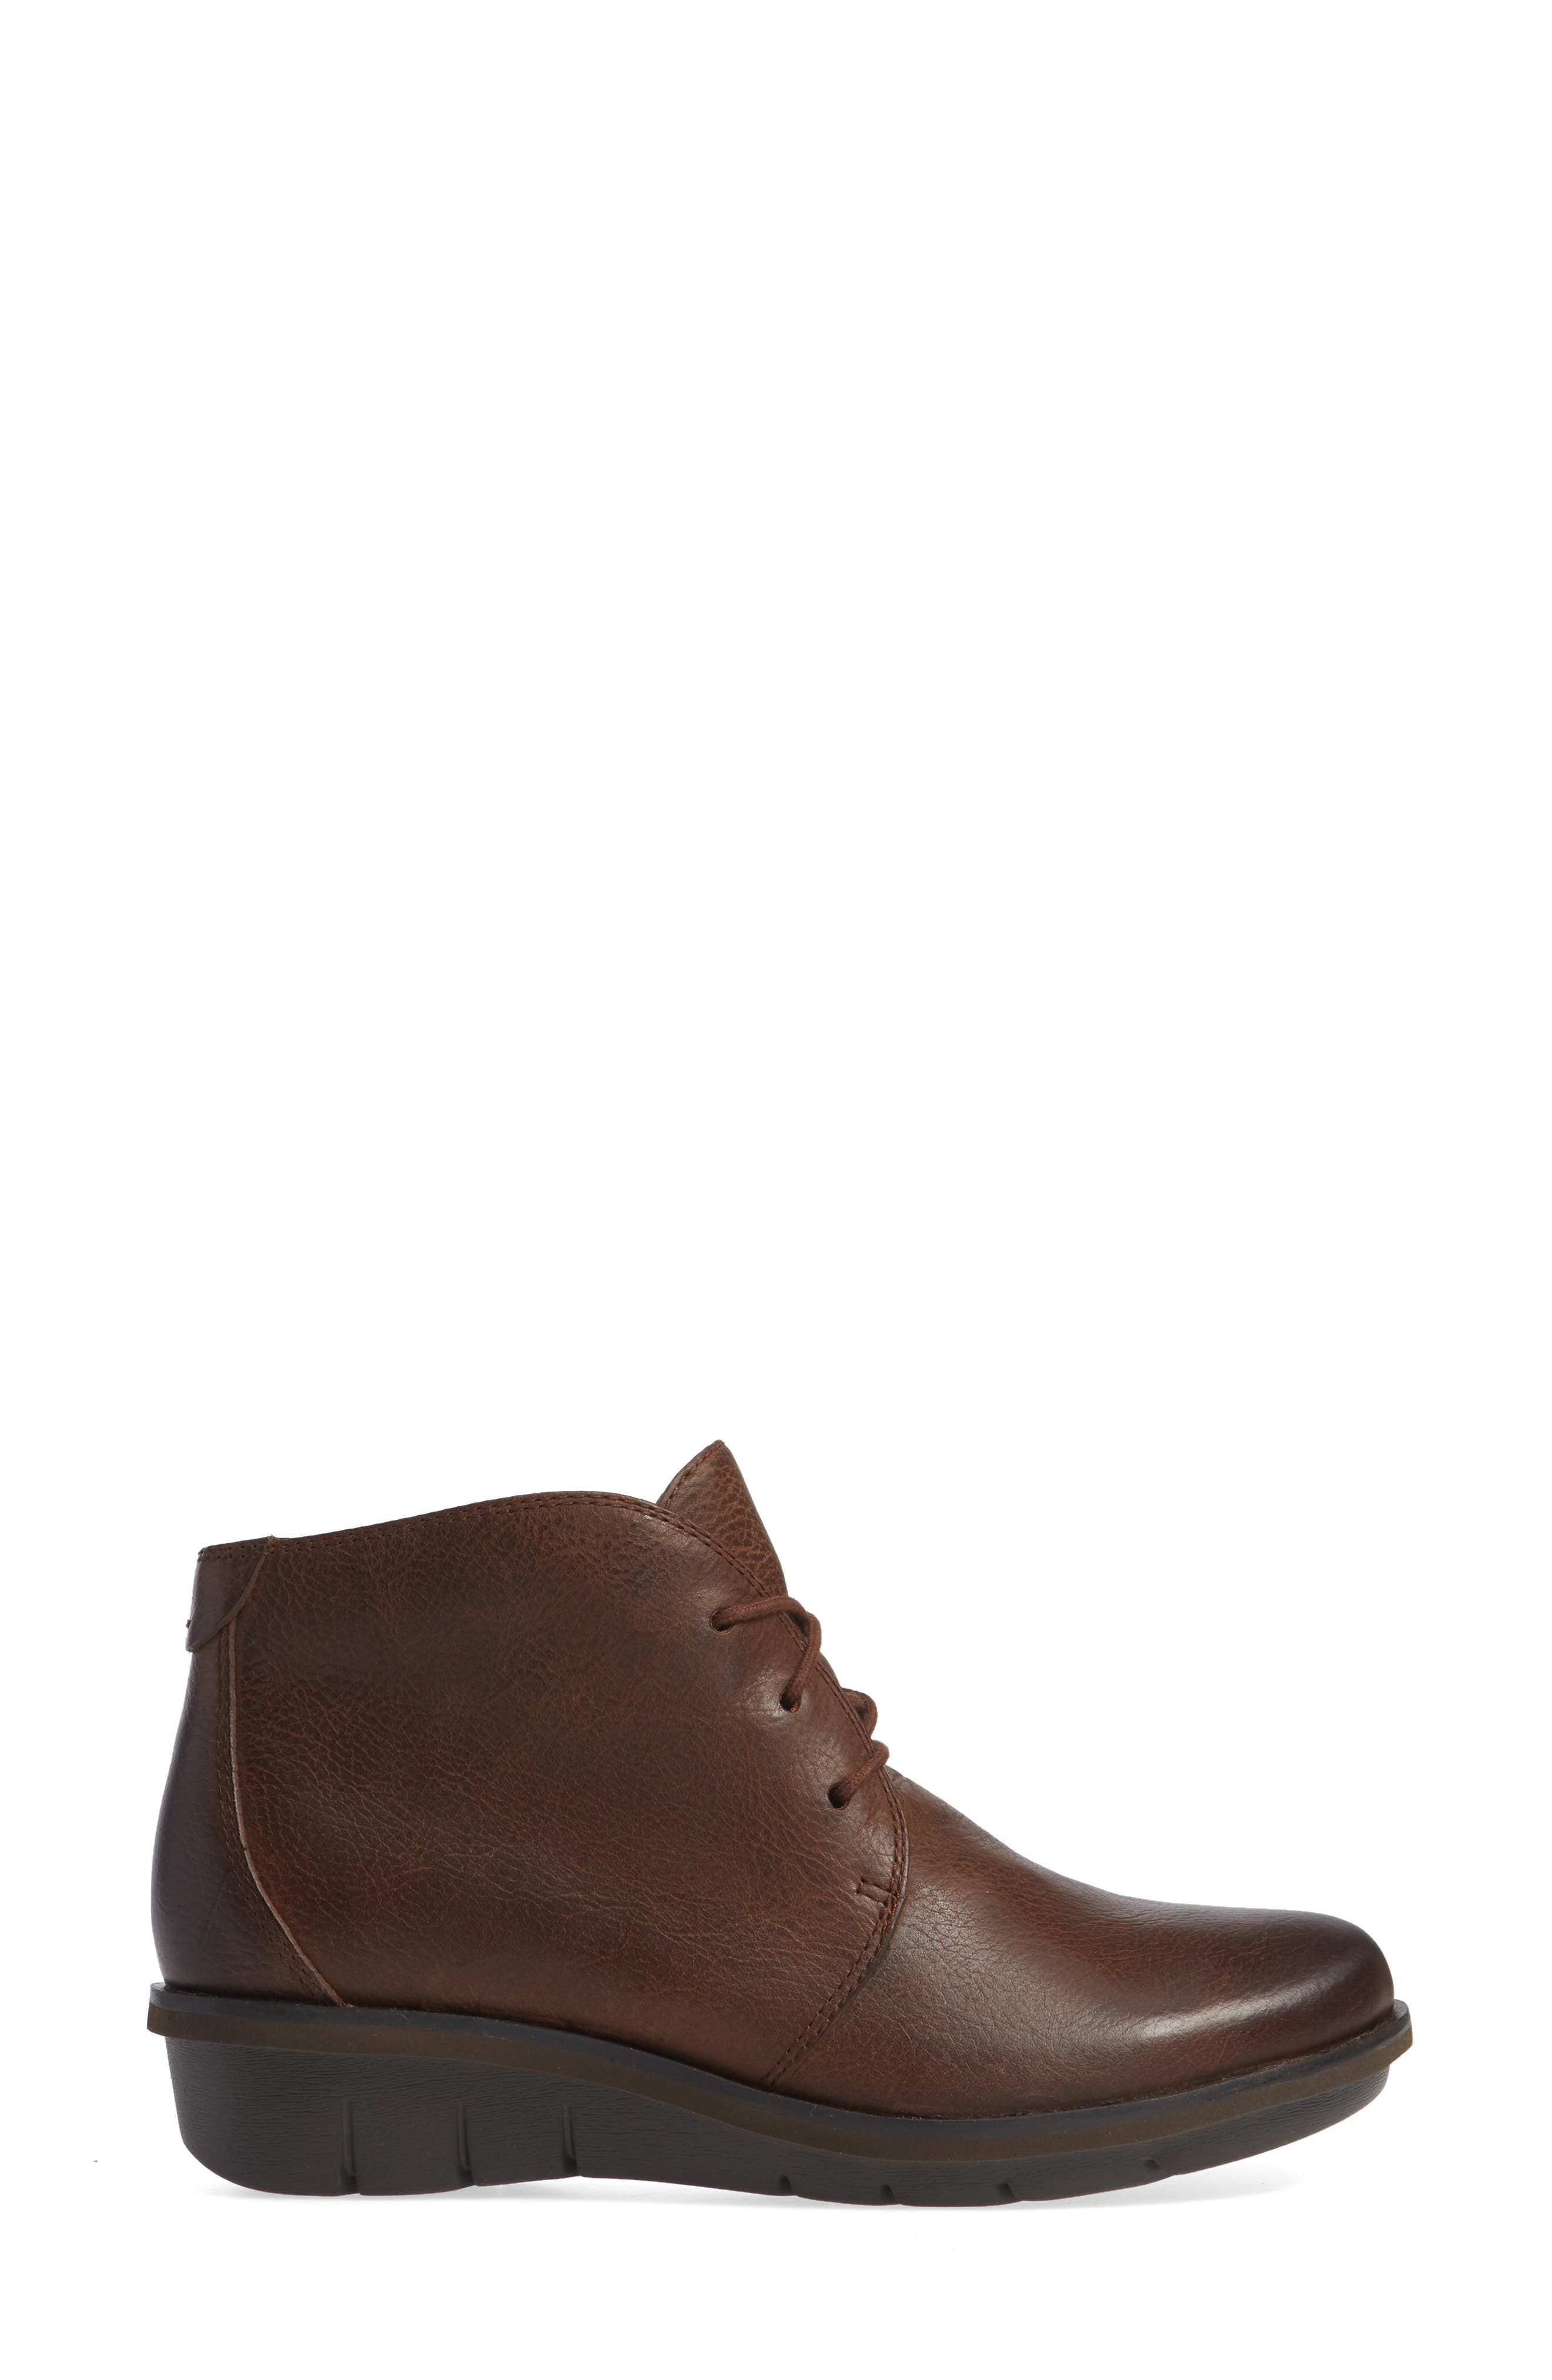 Joy Bootie,                             Alternate thumbnail 5, color,                             Brown Burnished Nubuck Leather